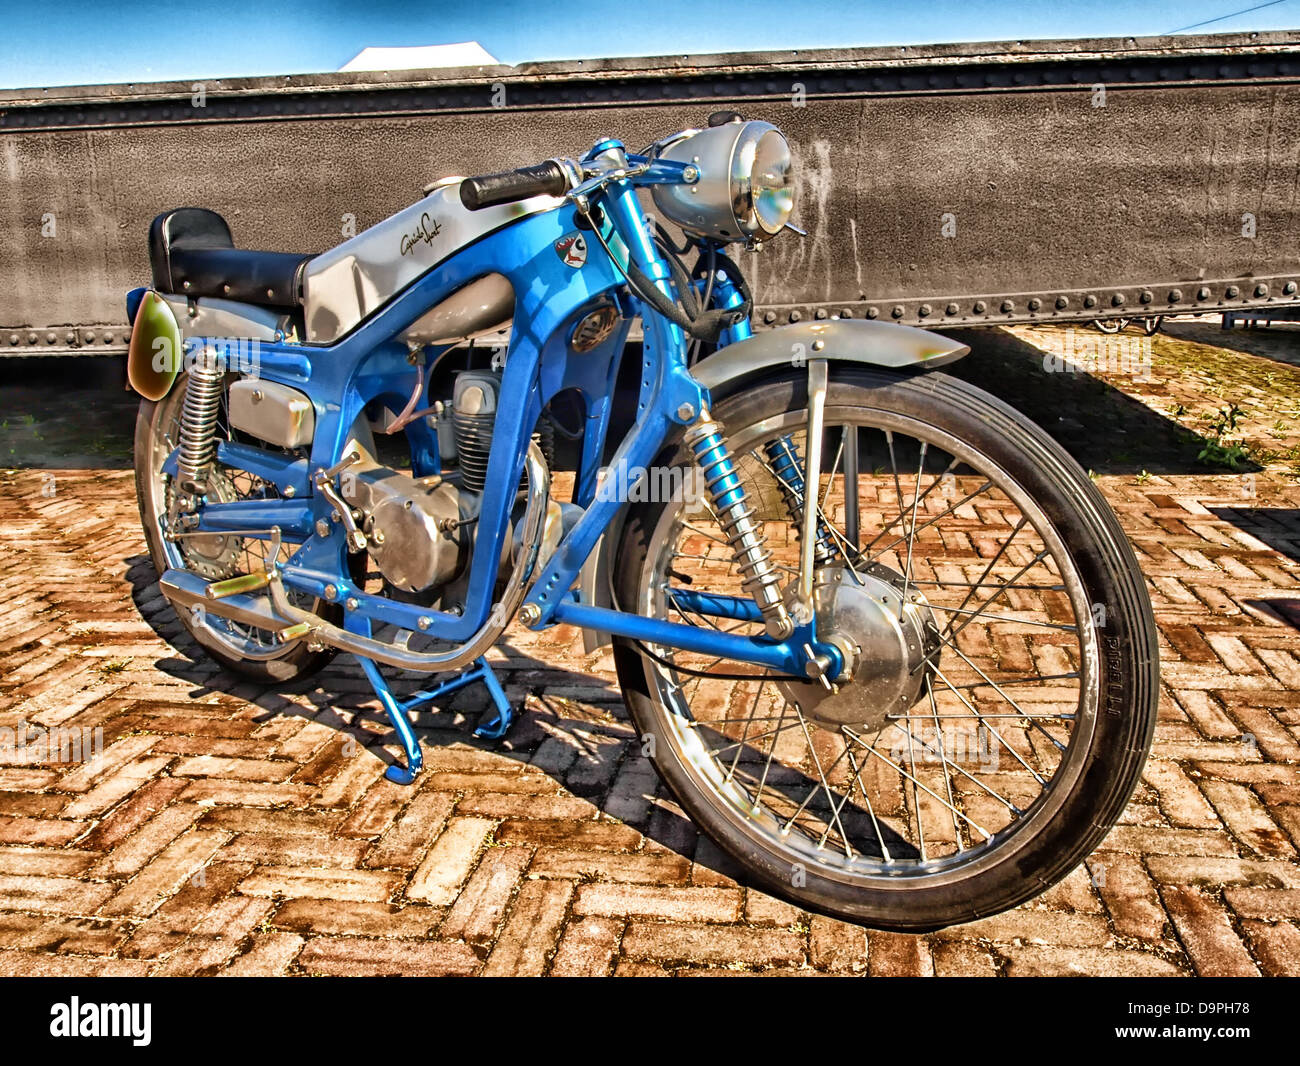 Capriola cycle moto sport hdr transport Photo Stock